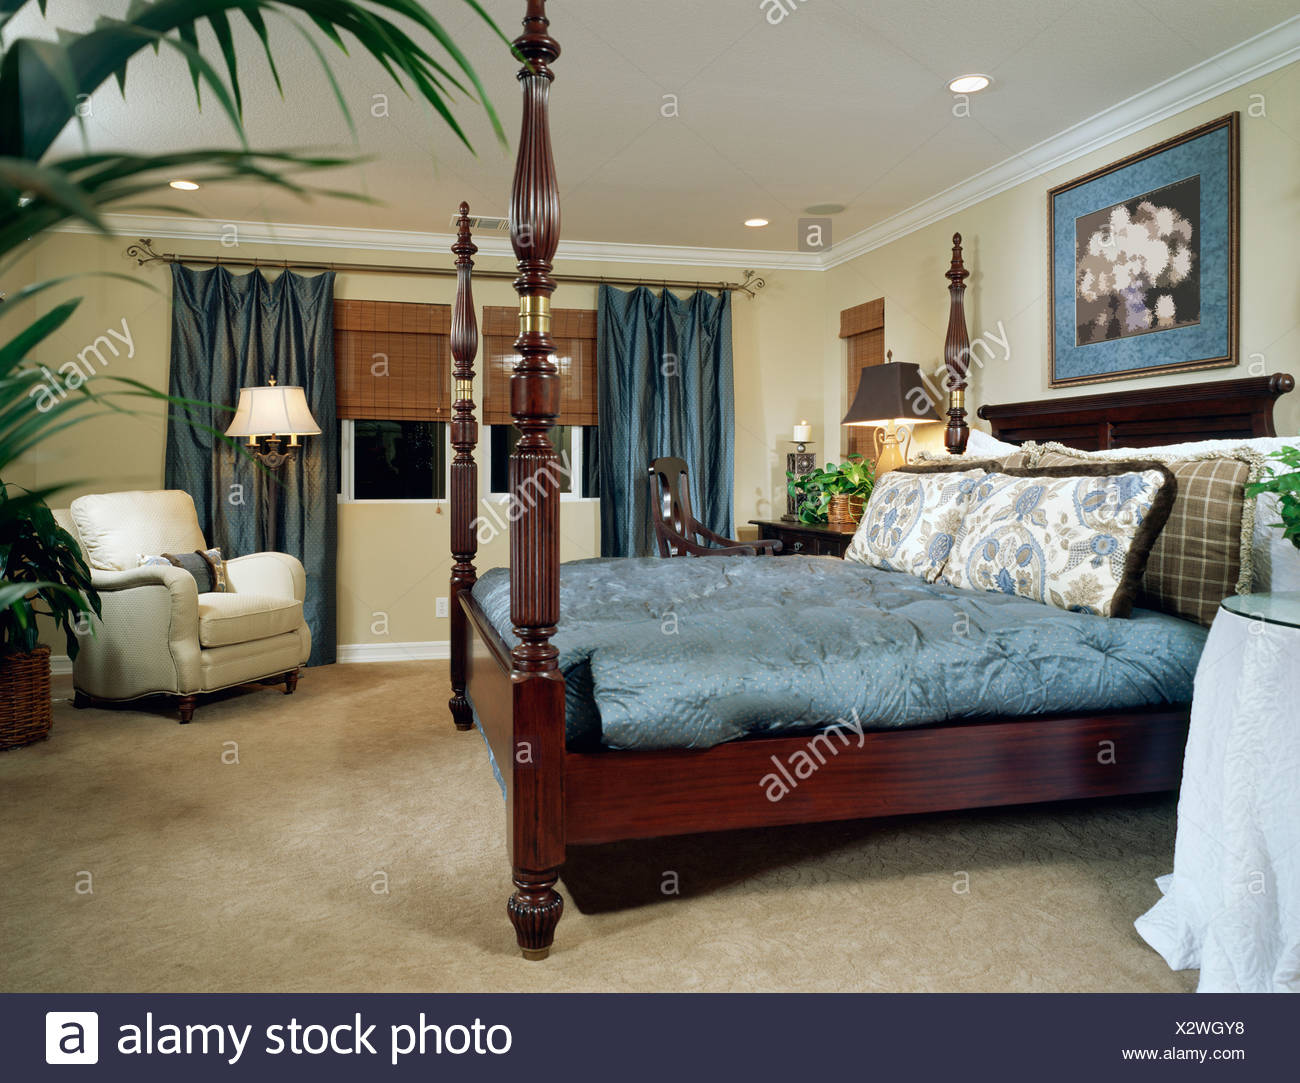 Elegant Bedroom with Four Post Bed - Stock Image